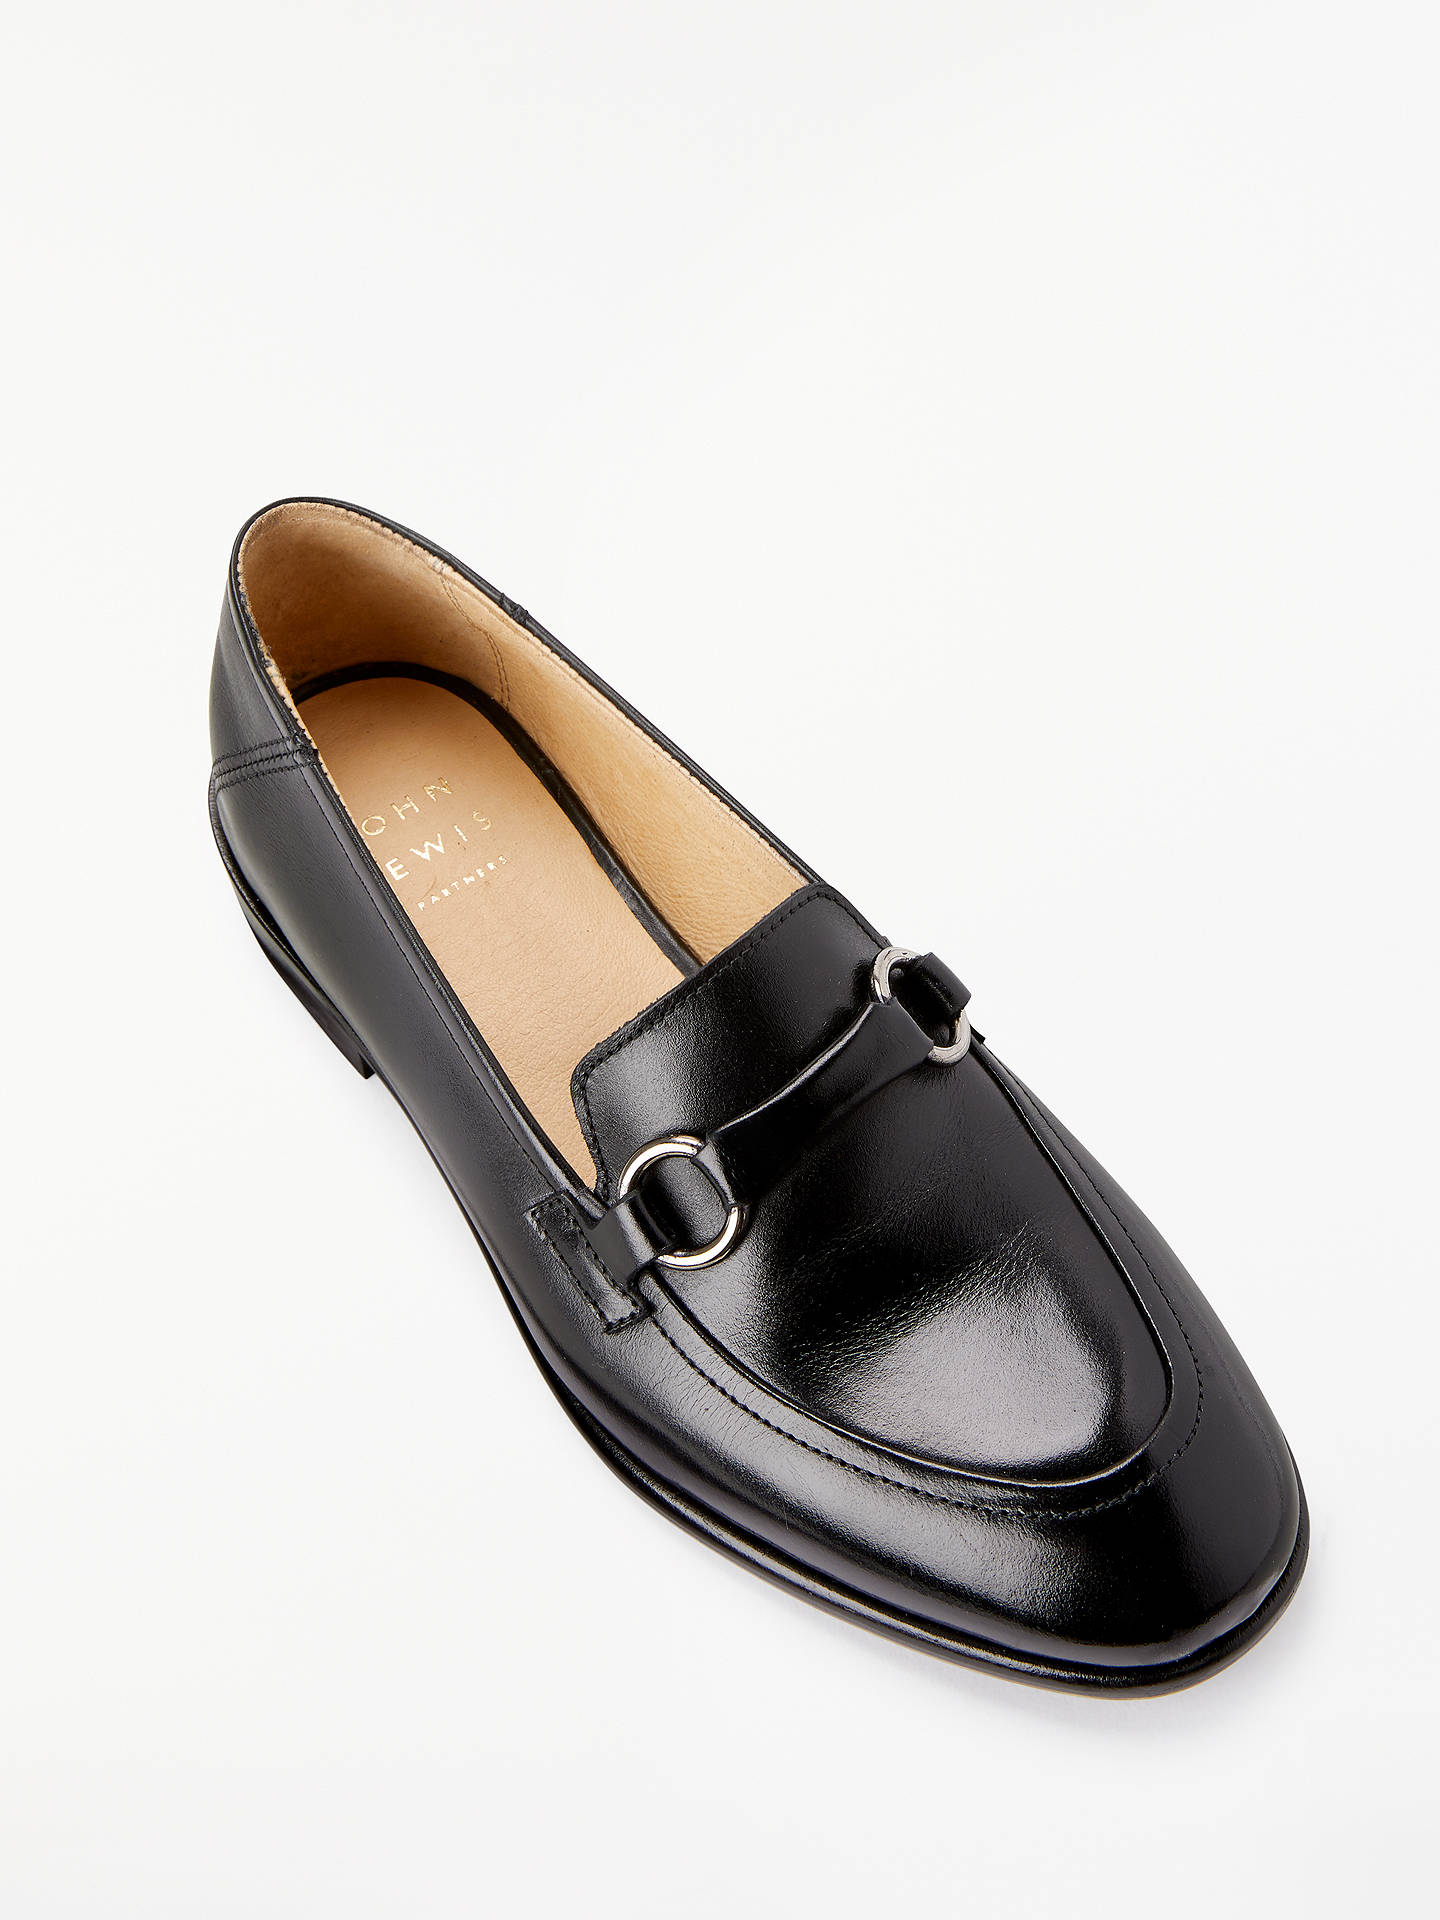 Buy John Lewis & Partners Genevieve Trimmed Loafers, Black Leather, 6 Online at johnlewis.com